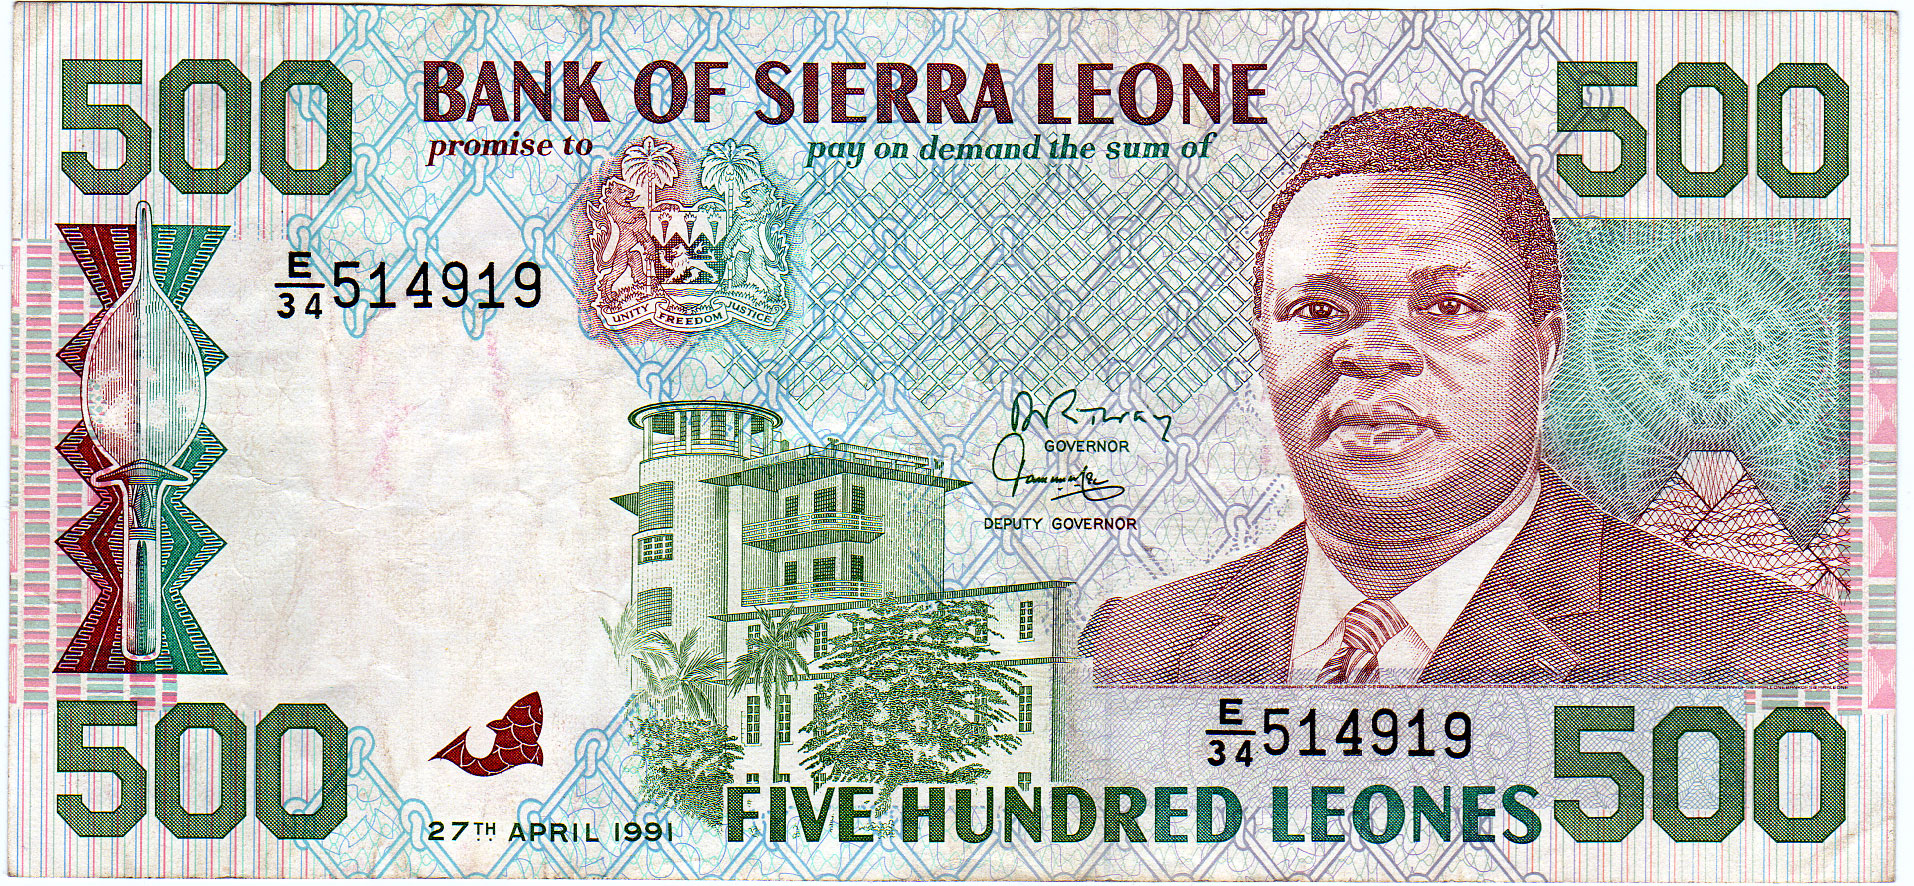 Currency Used During The Presidency Of Joseph Saidu Momoh